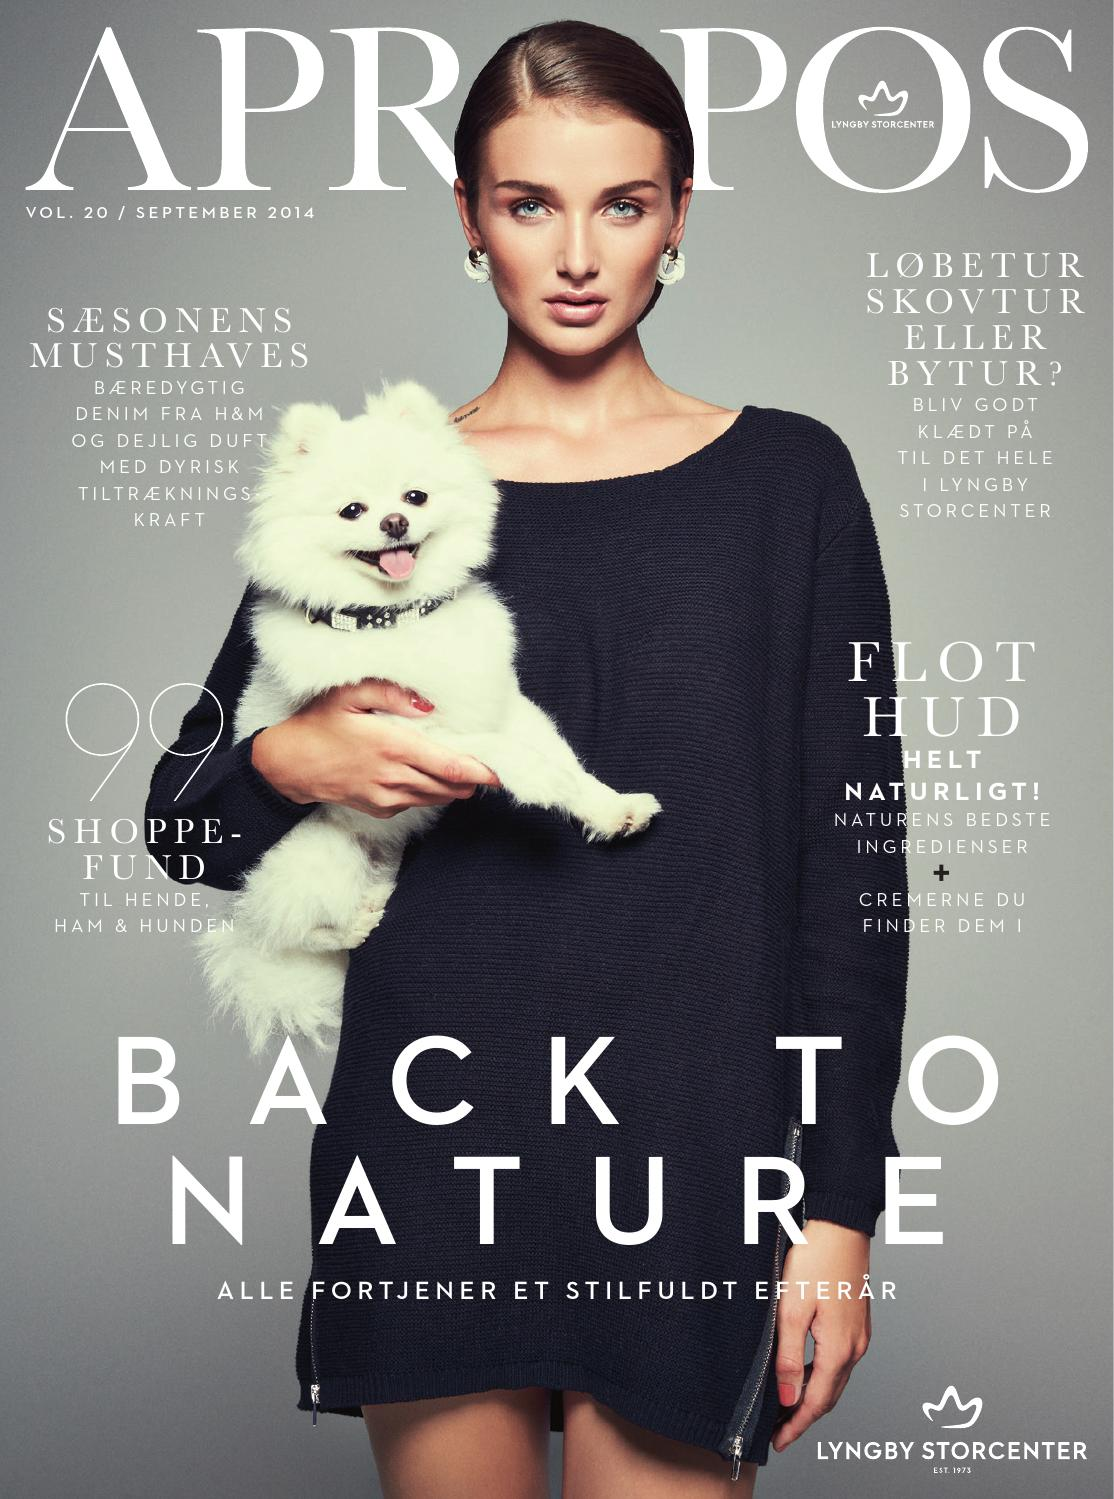 ad6a1f1f APROPOS - BACK TO NATURE by Lyngby Storcenter - issuu